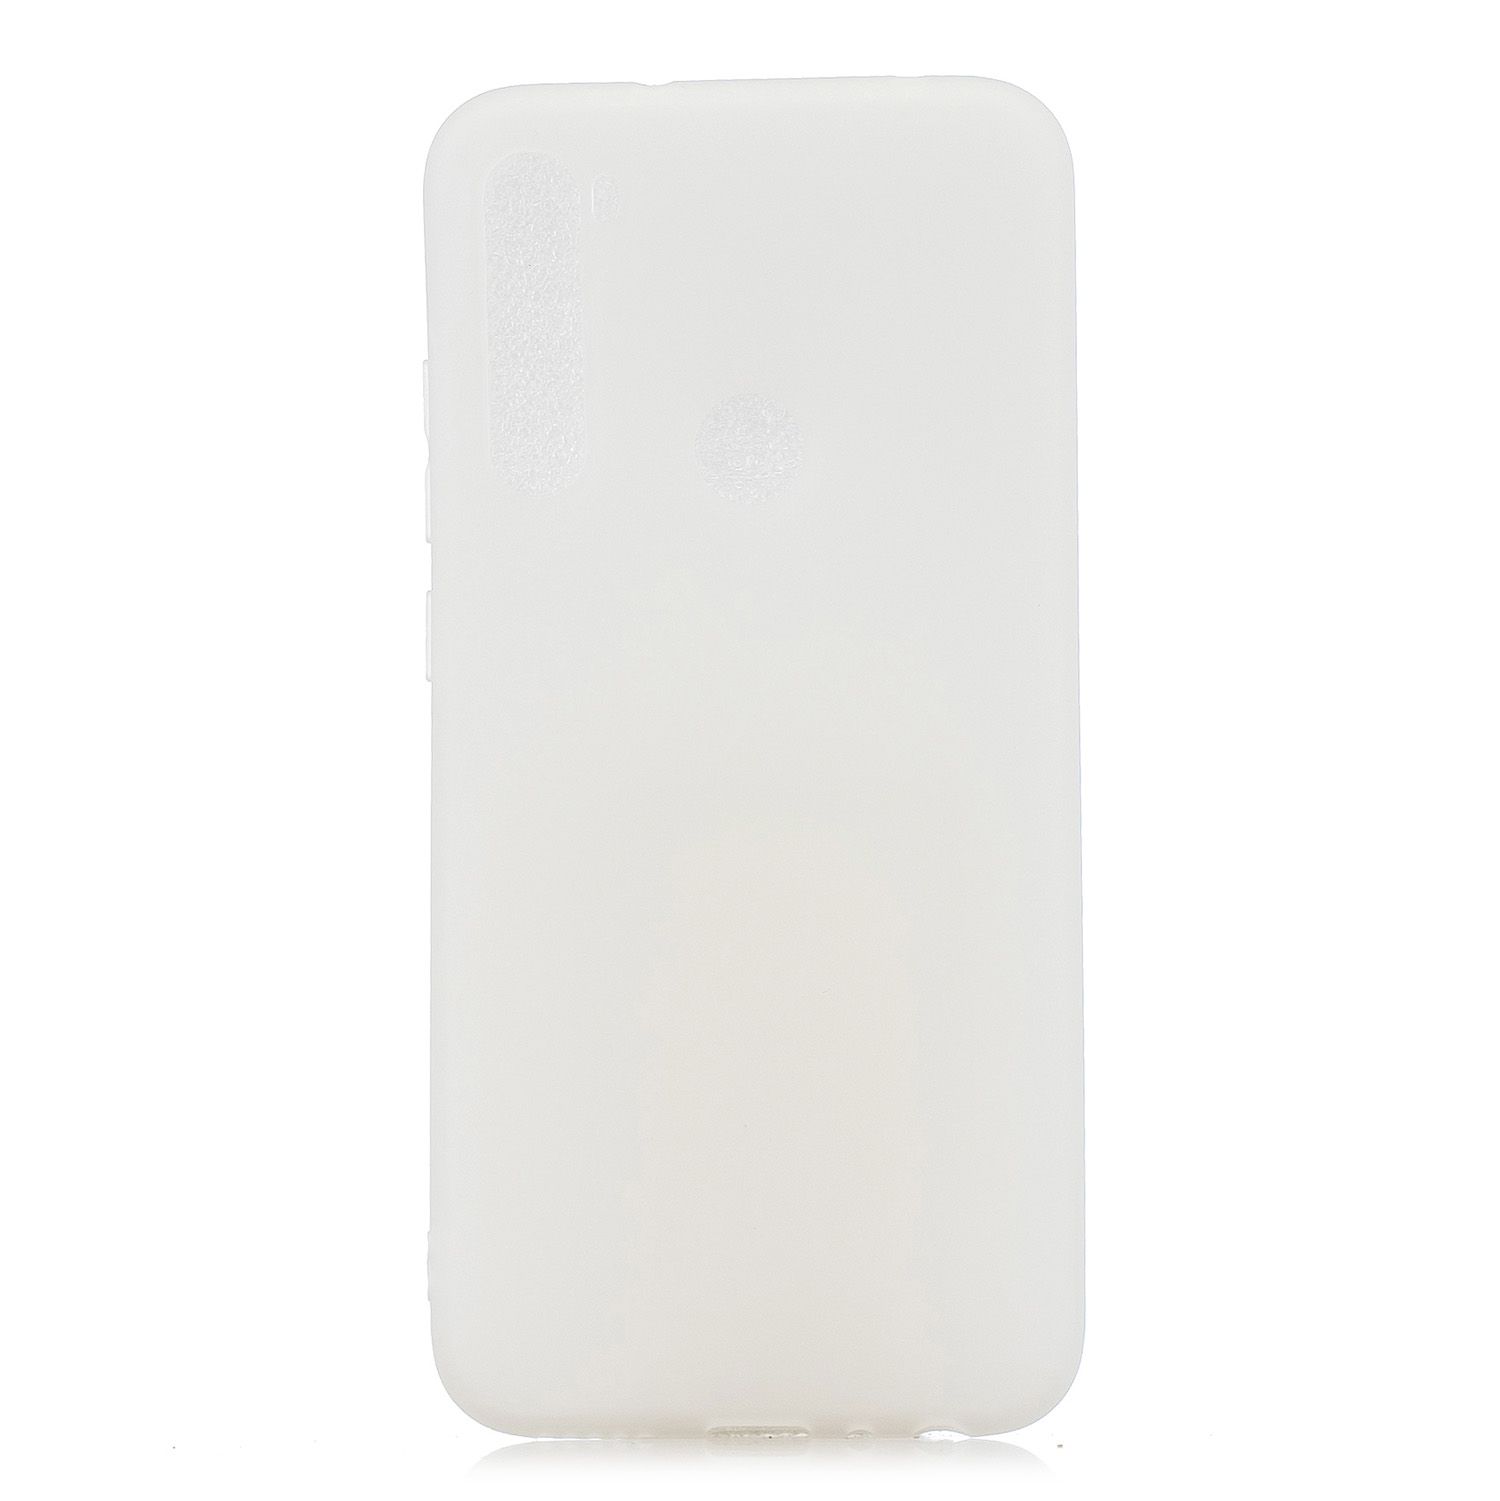 For Redmi NOTE 8 NOTE 8 Pro Soft Candy Color Frosted Surface Shockproof TPU Back Cover Mobile Phone Case white